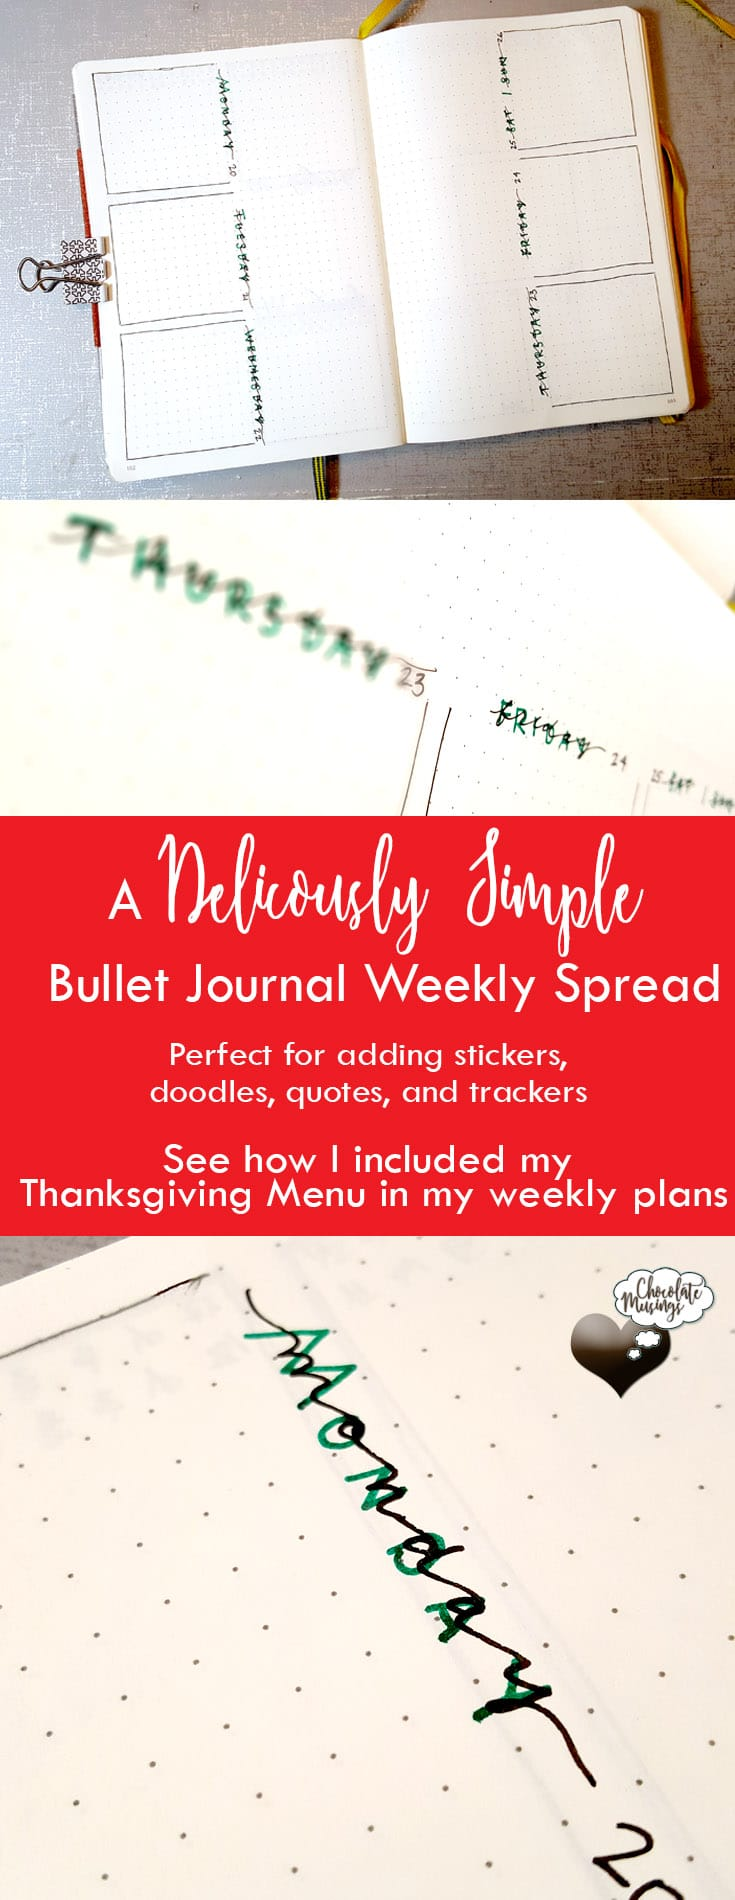 A Deliciously Simple Weekly Bullet Journal Spread Vertical Open Squared Weekly Bullet Journal Planner Layout with large center margins